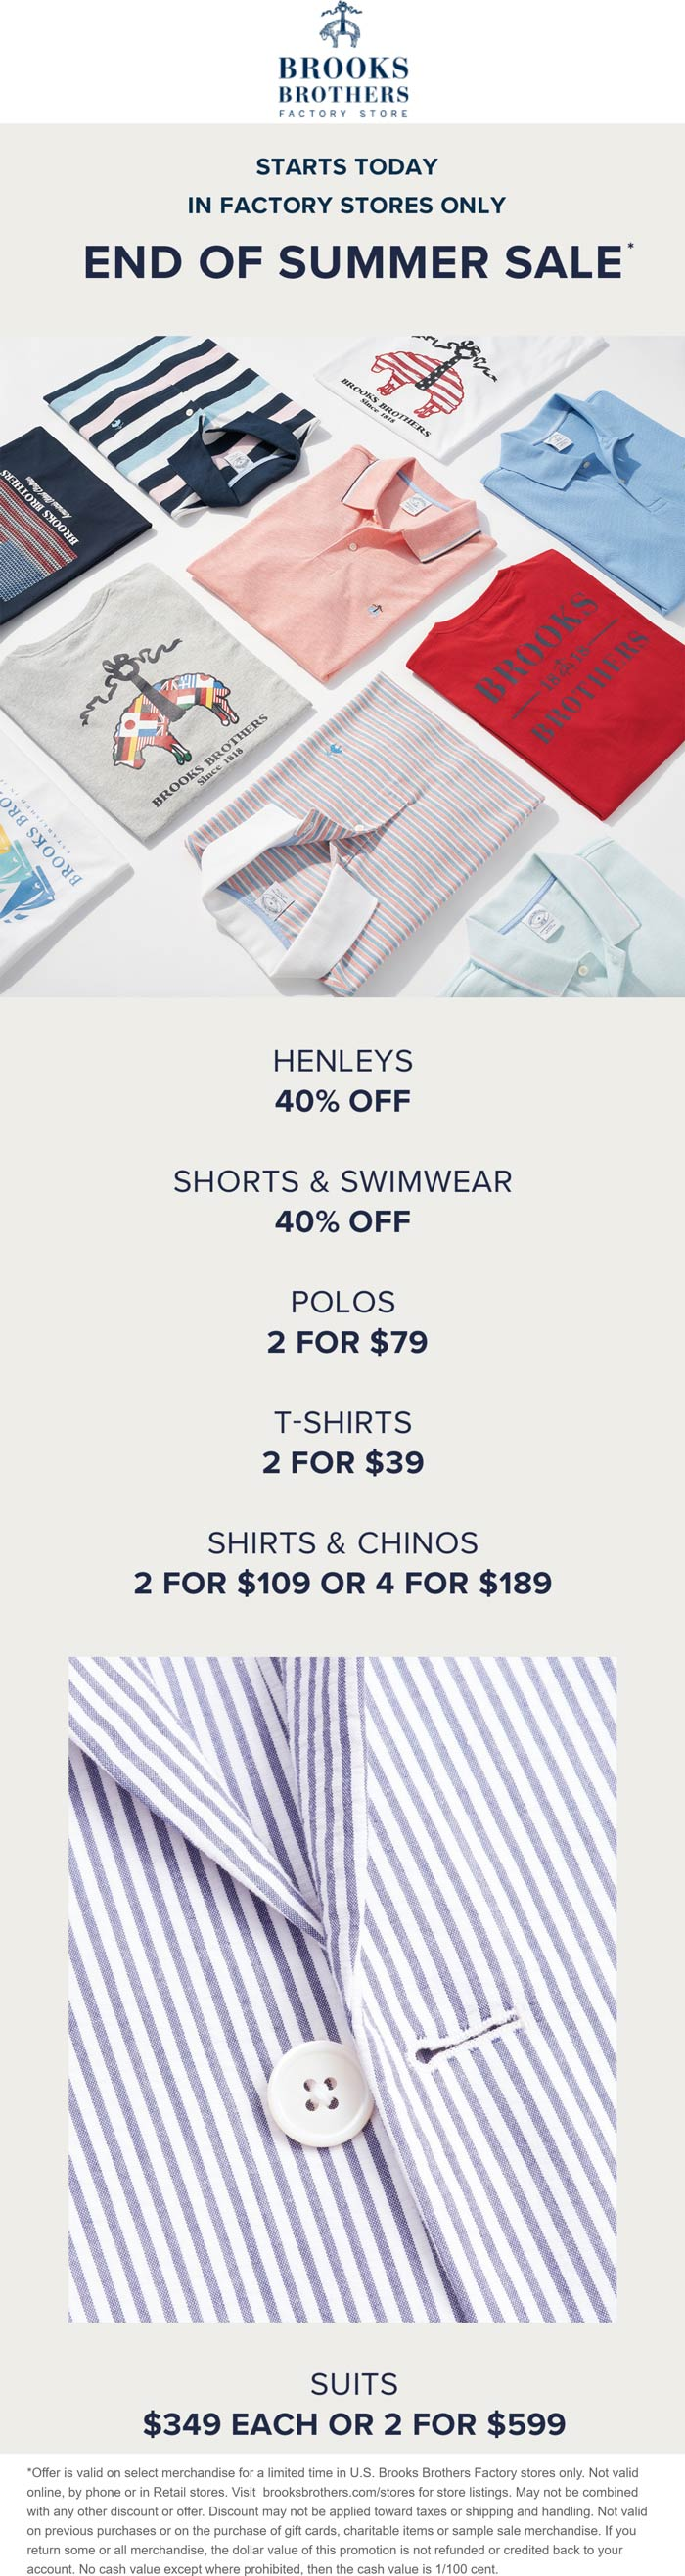 Brooks Brothers Factory Store stores Coupon  40% off henleys & more at Brooks Brothers Factory Store, also online #brooksbrothersfactorystore